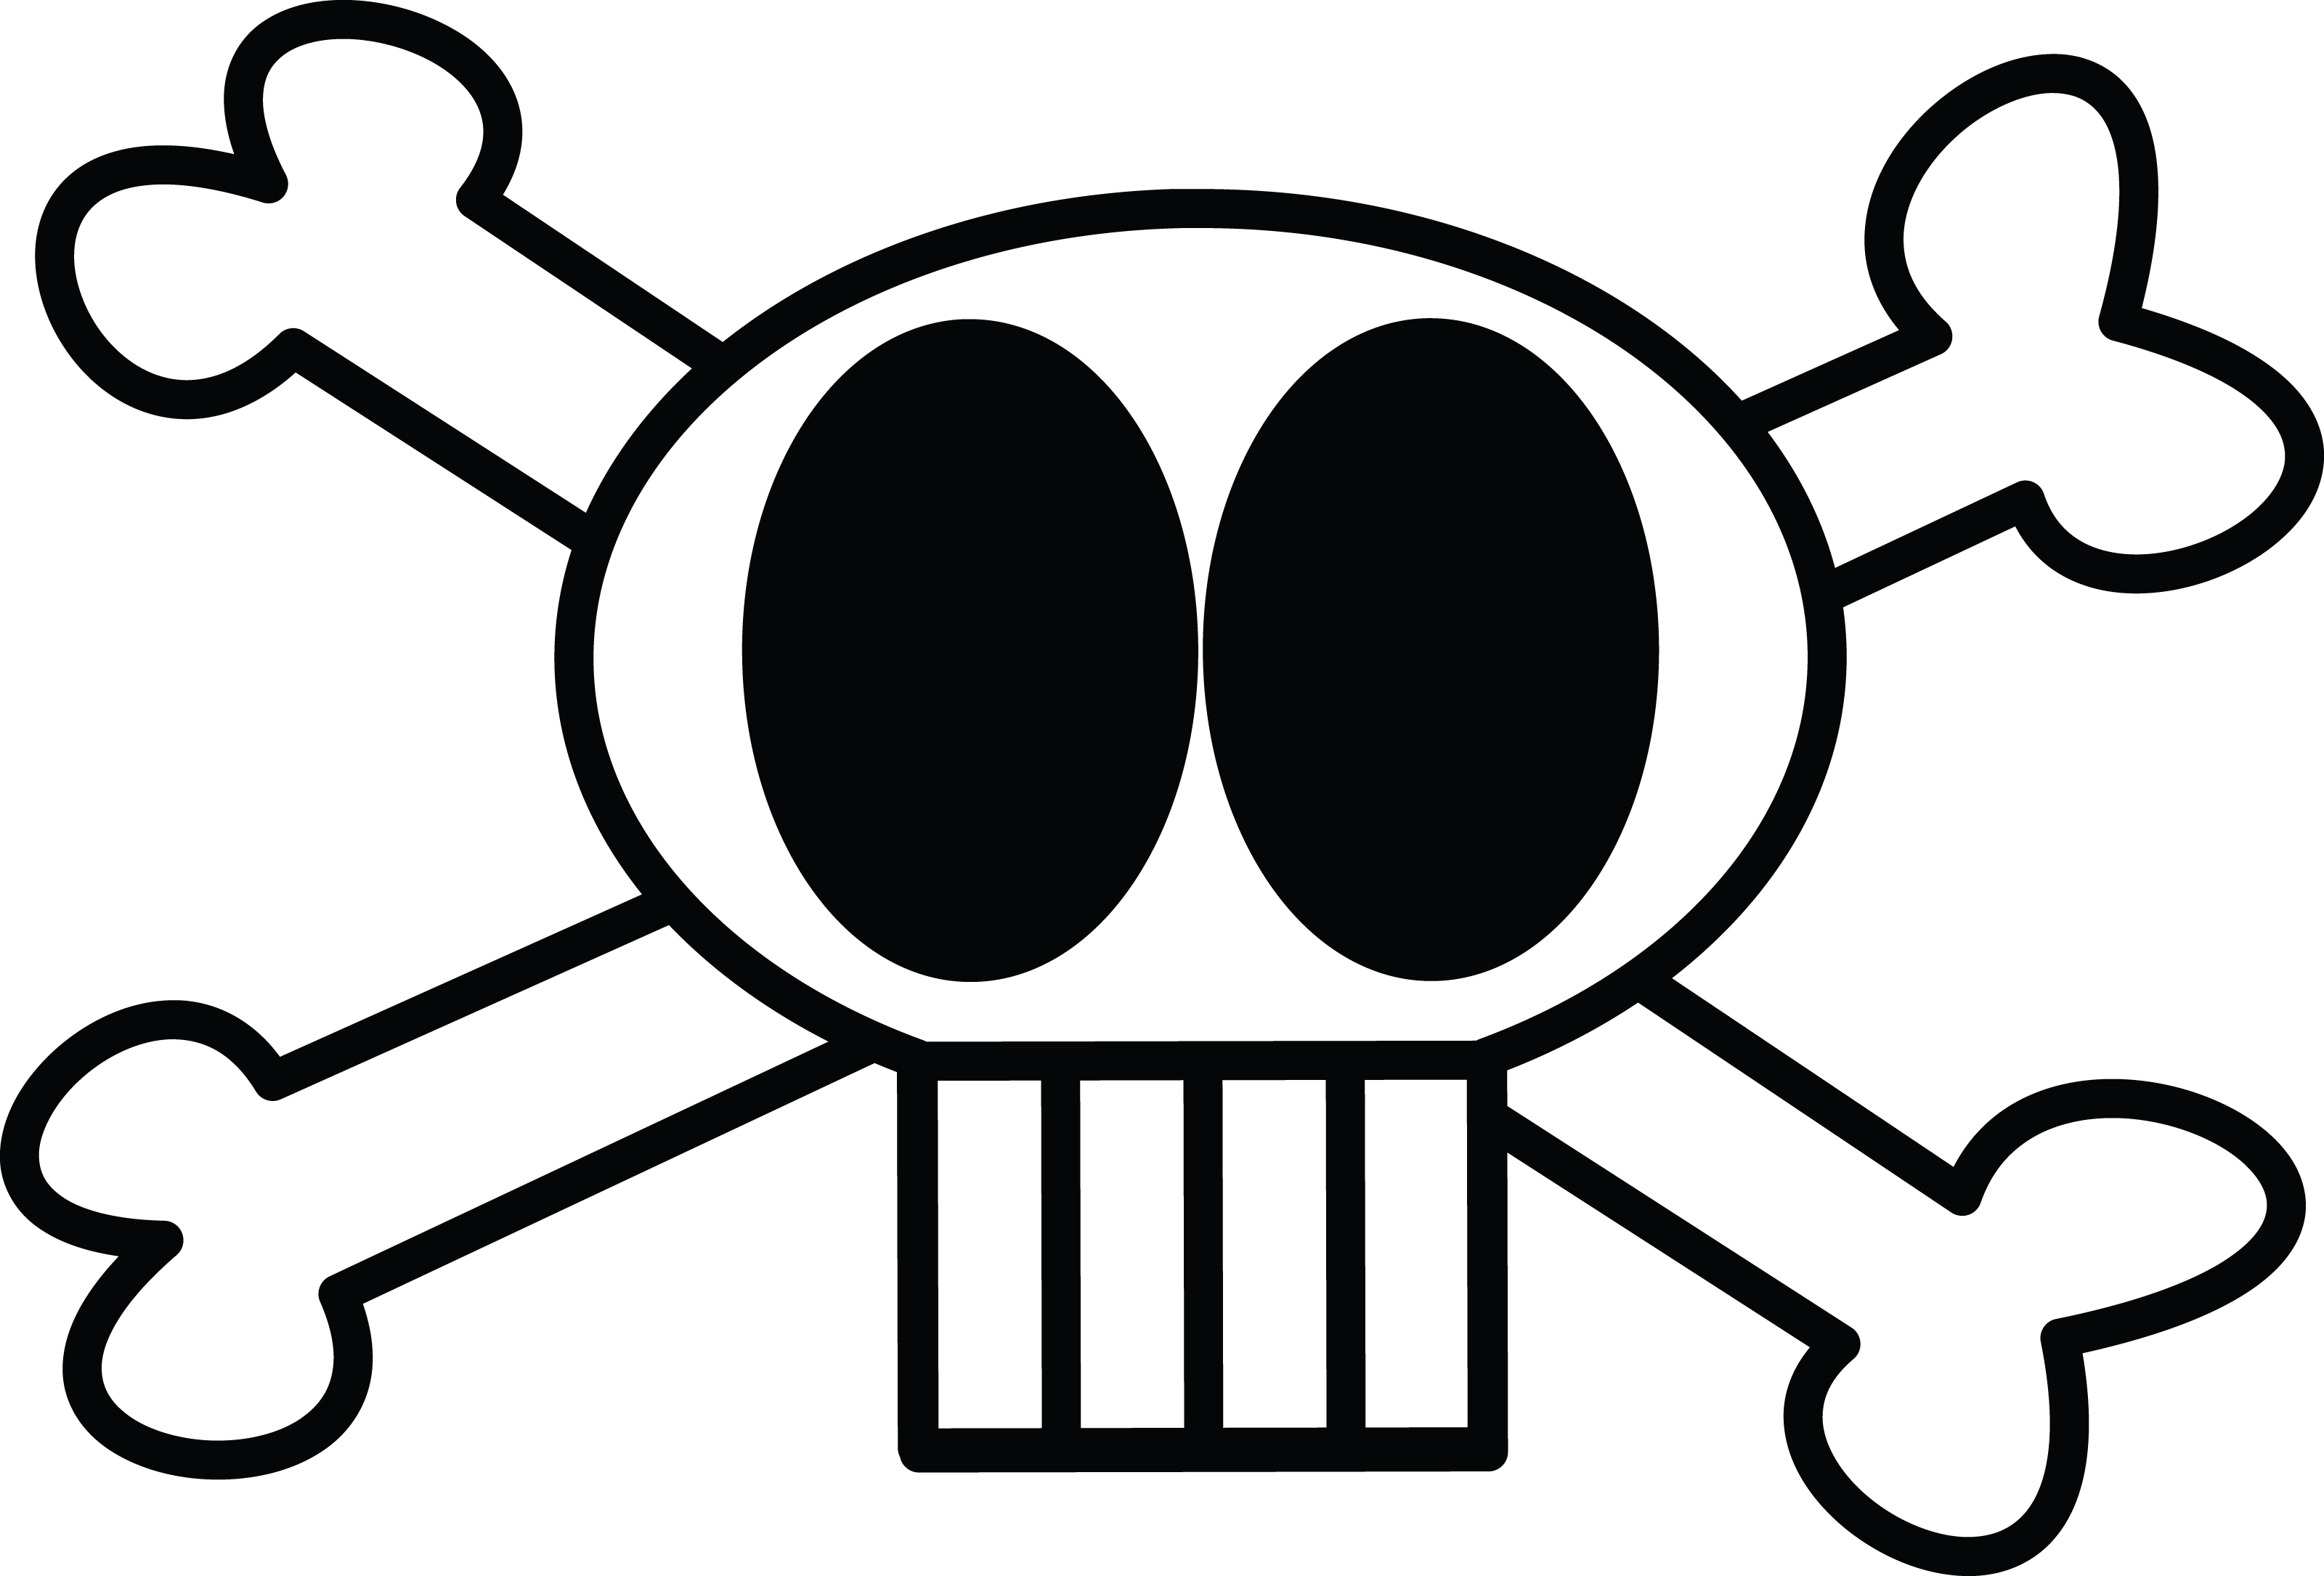 Free Clipart Illustration Of Skull And C-Free Clipart Illustration Of Skull And Crossbones-4